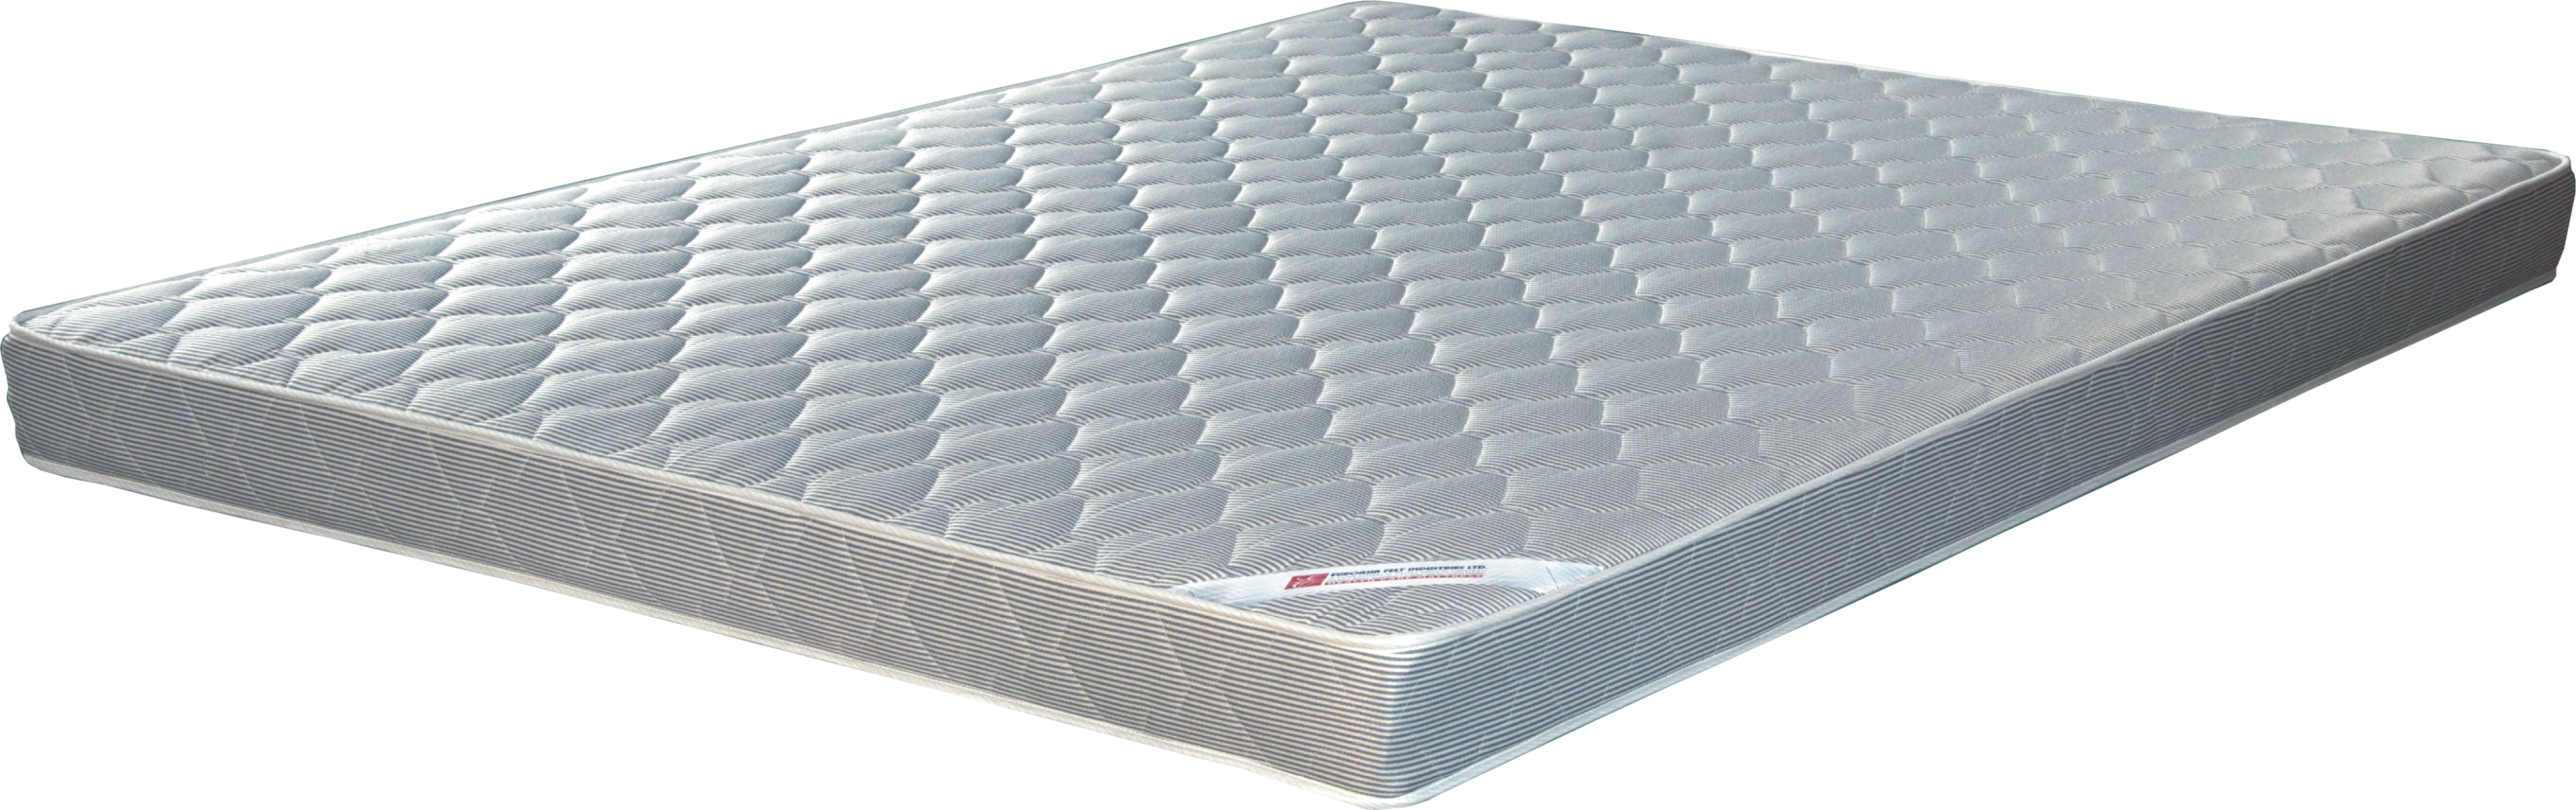 mattress png. Dream Mattress Png